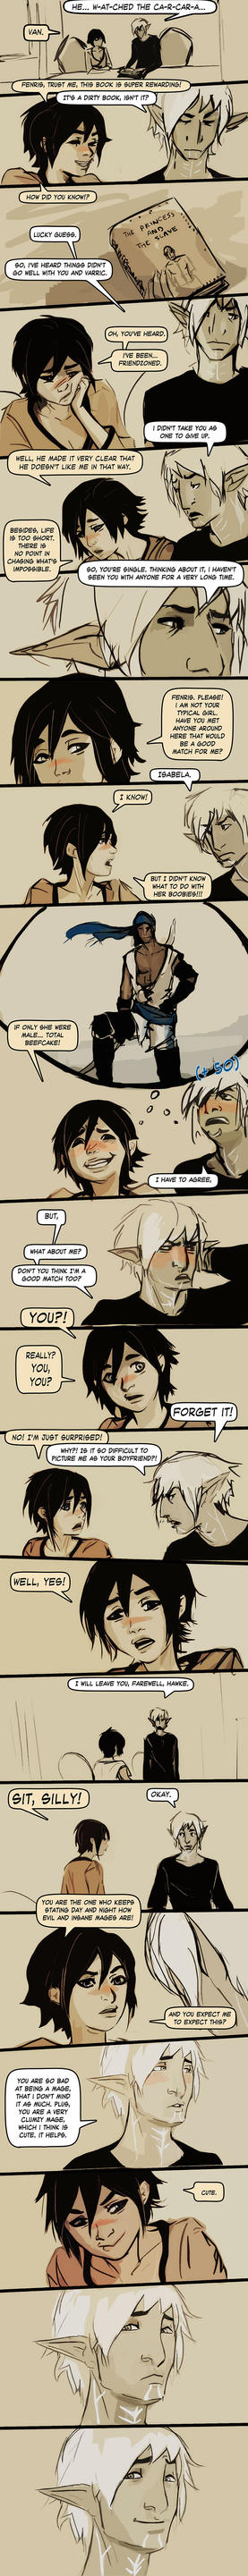 Fenris and Hawke 01 by chakhabit